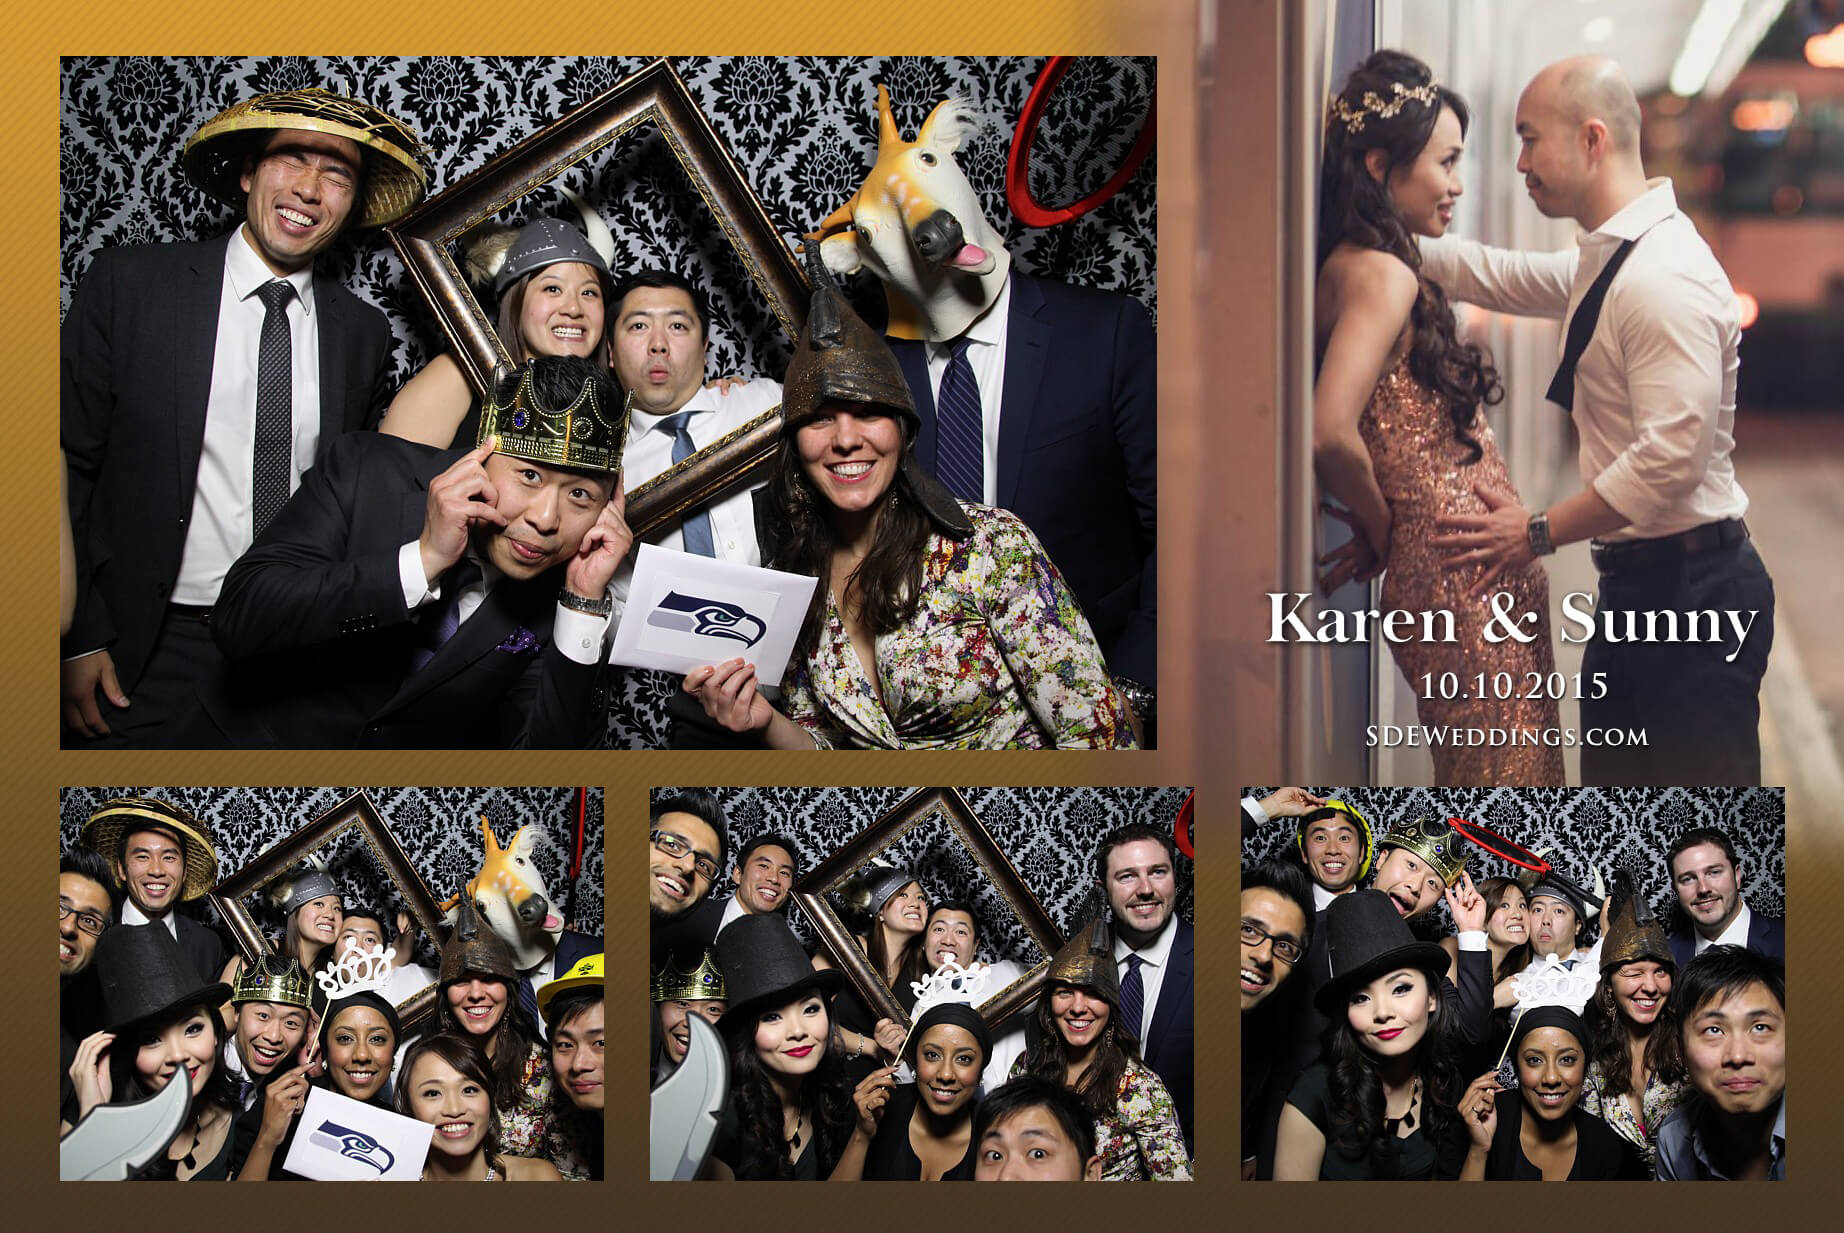 Toronto Fantasy Farm Wedding Photo Booth Rental 1